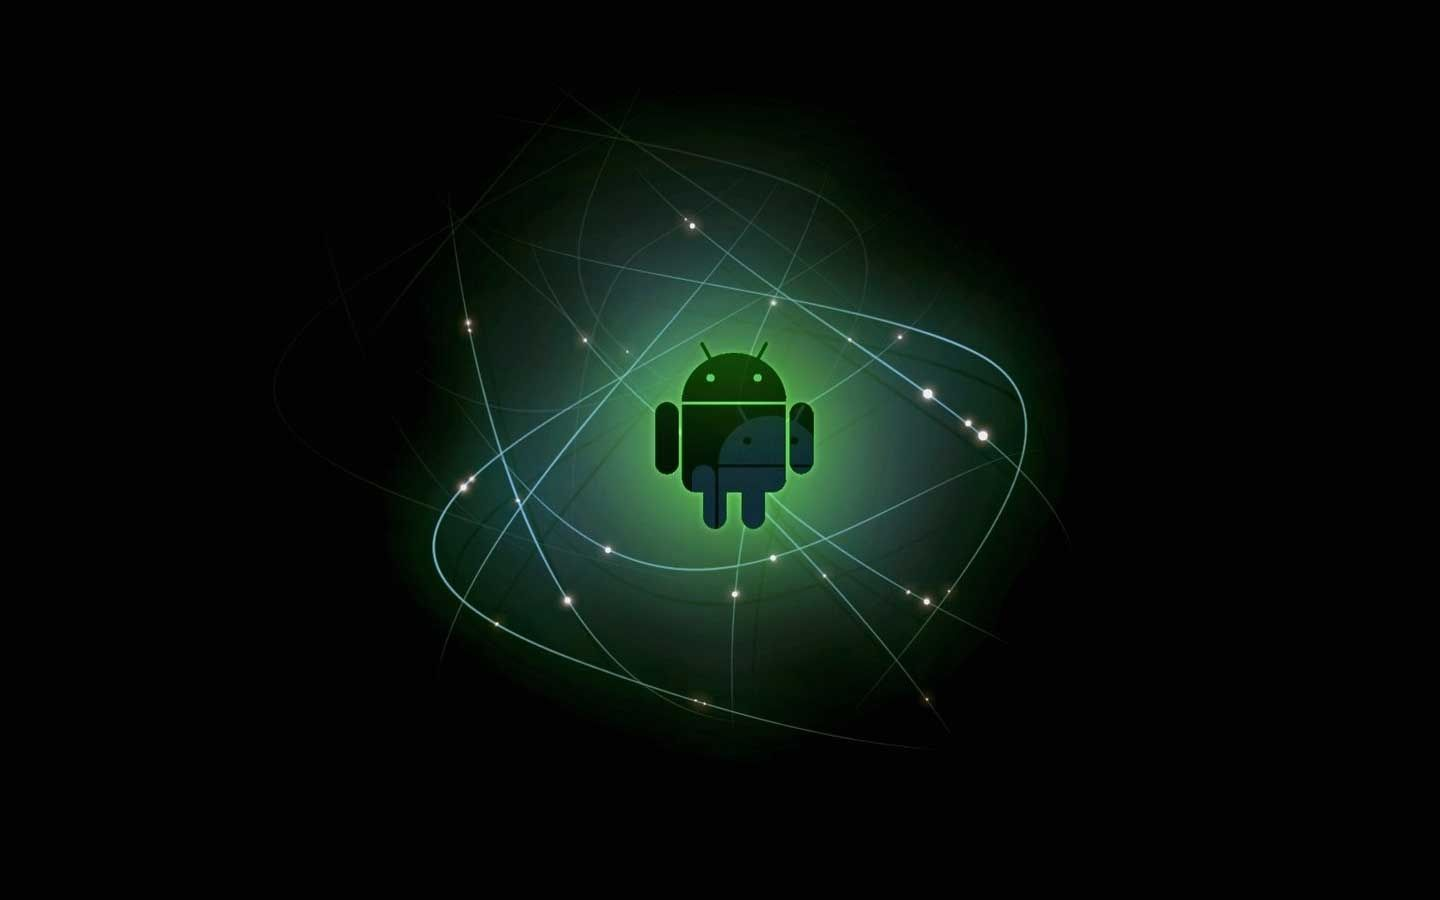 10 Latest Dark Android Wallpaper Hd Full Hd 1080p For Pc Background Hd Wallpaper Android Android Phone Wallpaper Android Wallpaper